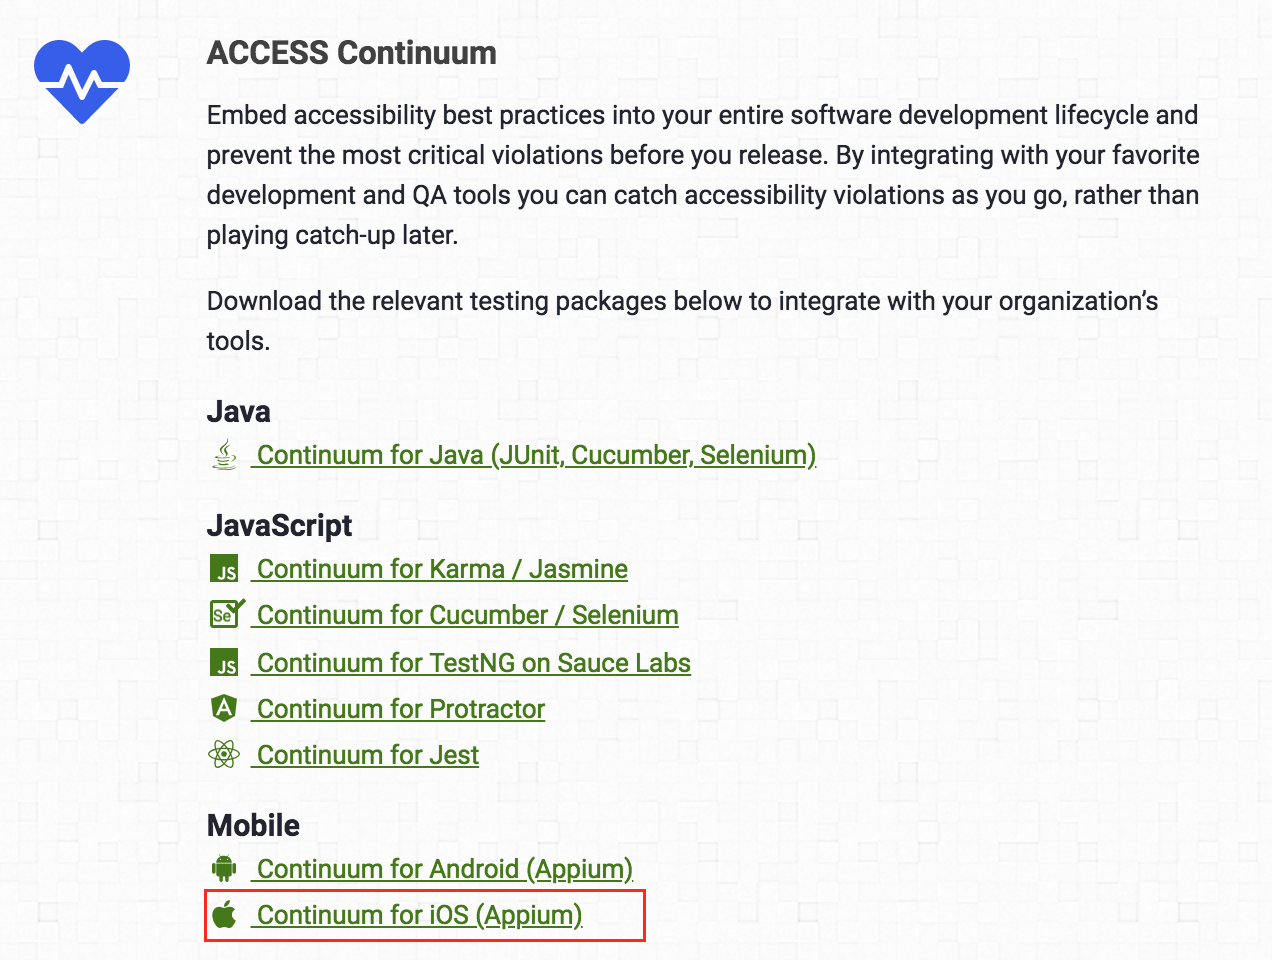 Continuum for iOS download in AMP Toolbox